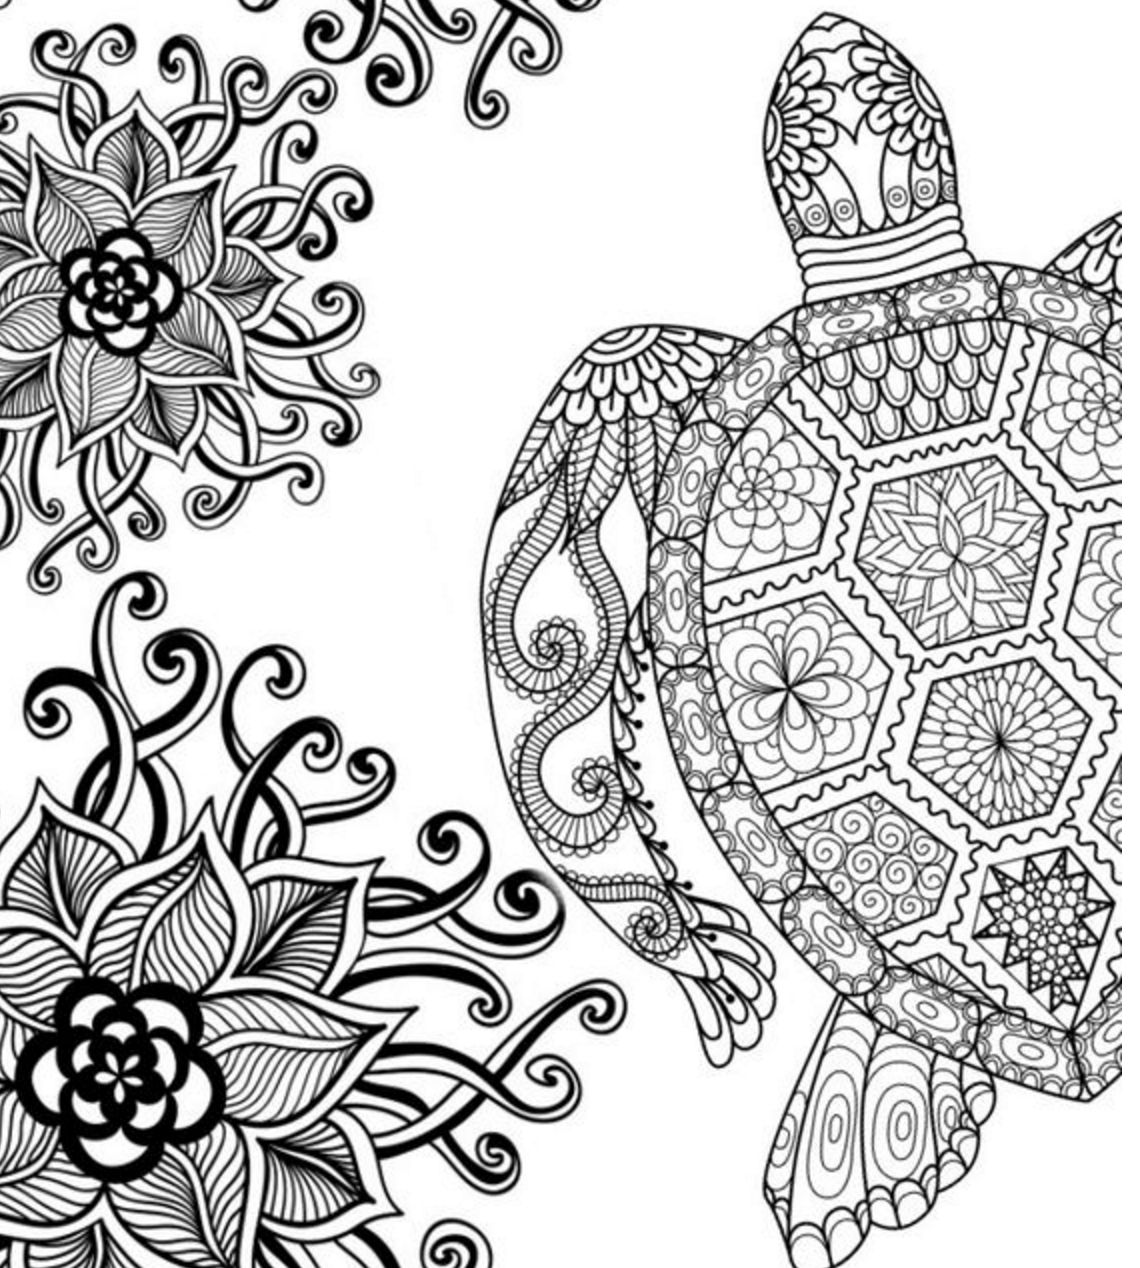 1140x1268 Revolutionary Turtle Coloring Pages For Adults At Turtle